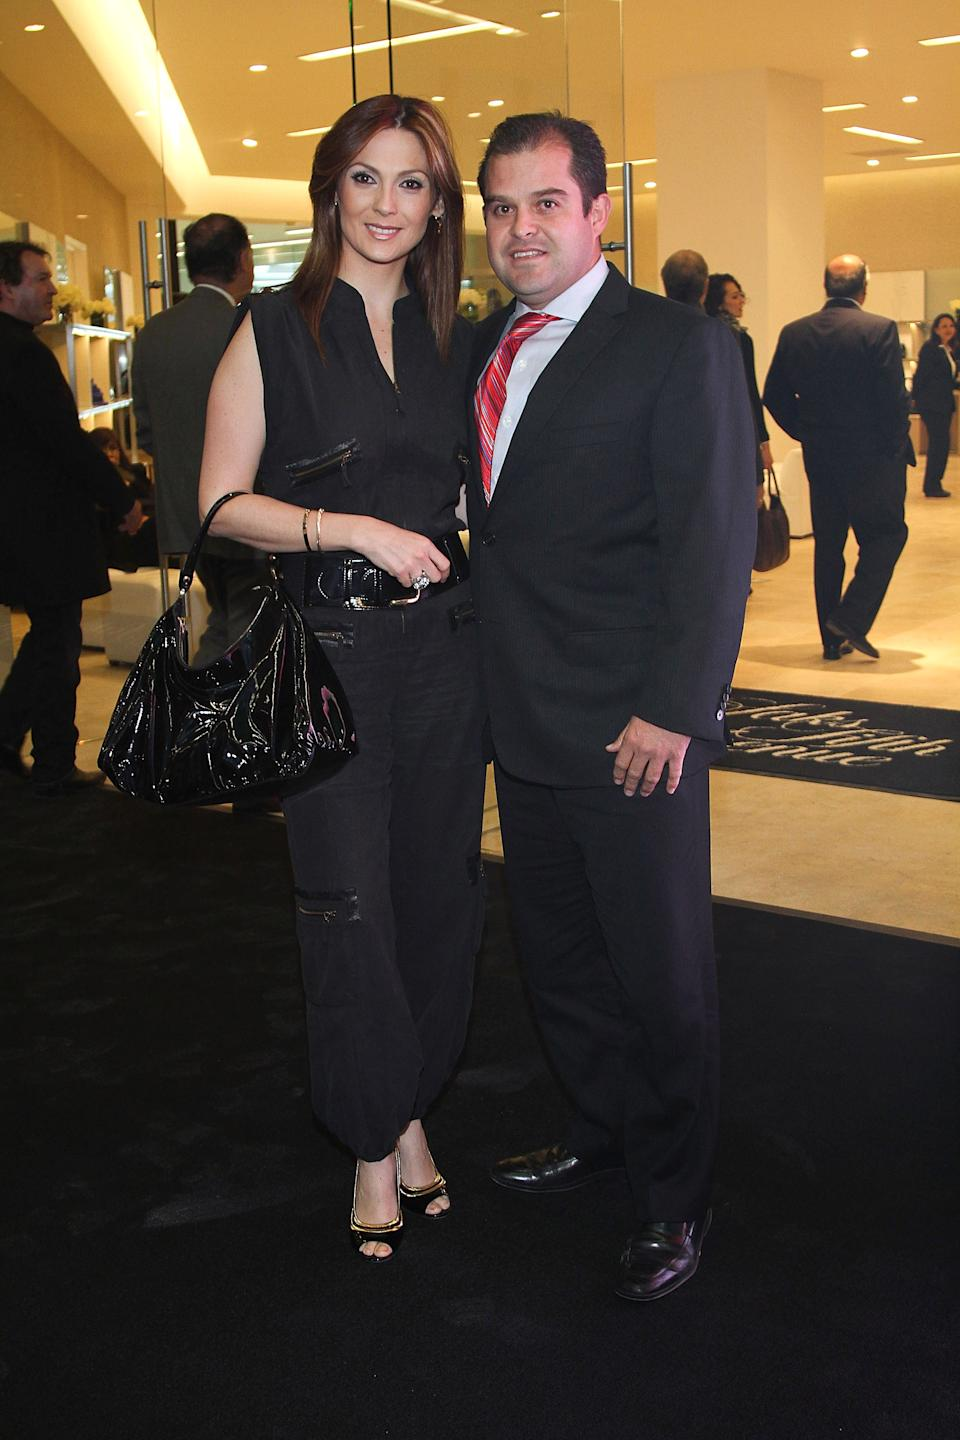 Nora Salinas y Mauricio Becker en el 2010. (Photo by Victor Chavez/WireImage)